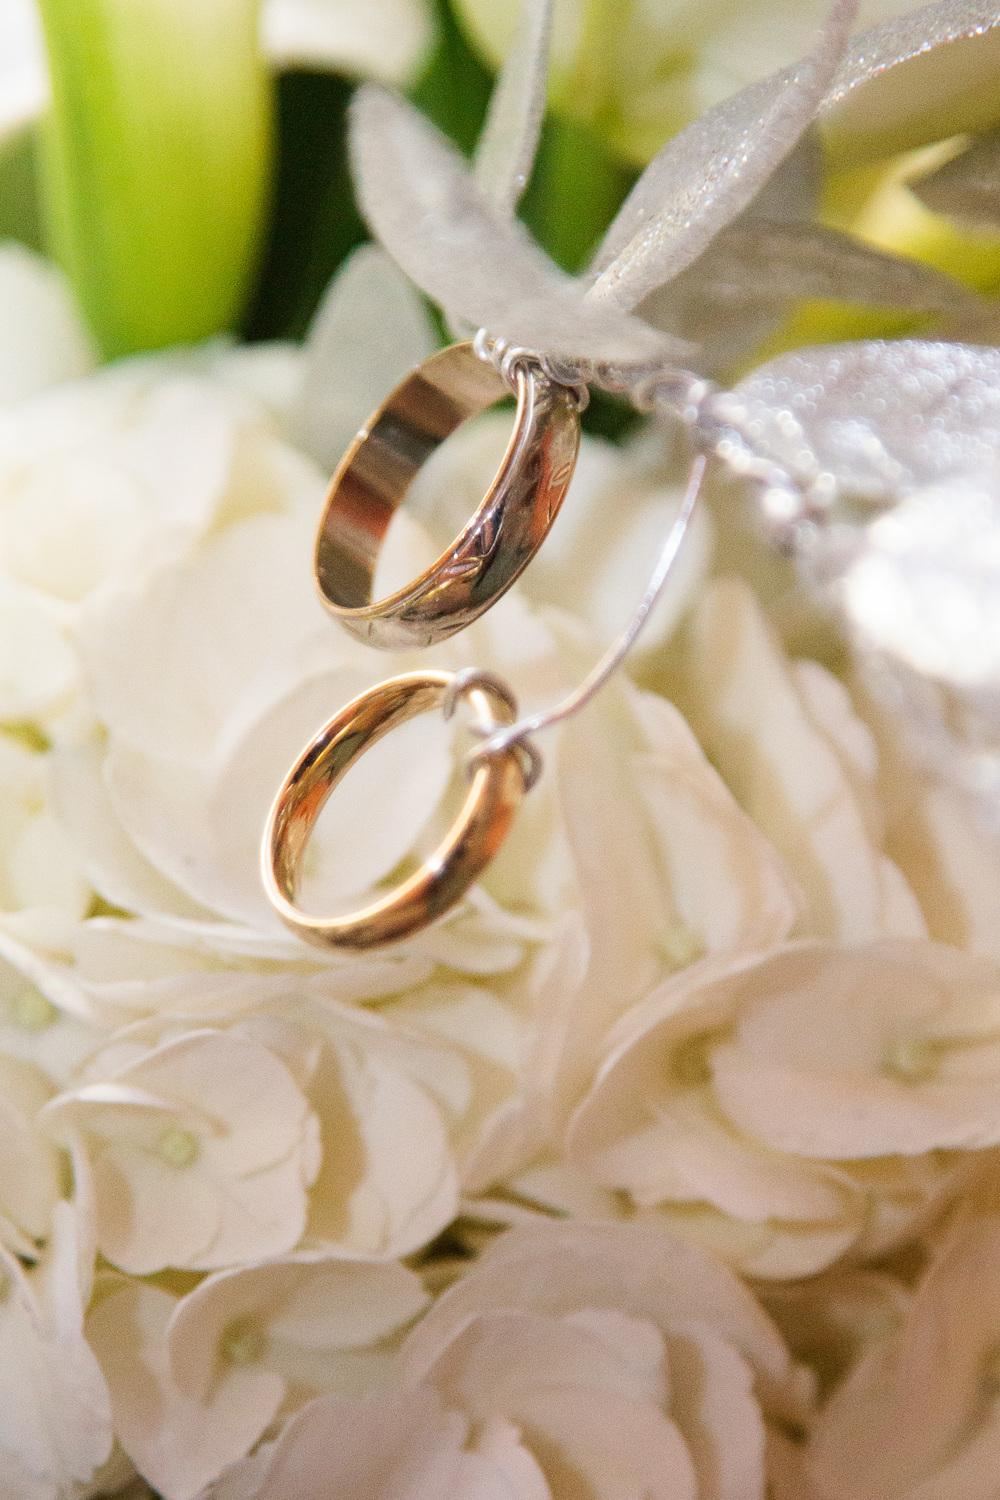 Brittany included her grandfather's wedding bands in her bouquet on her wedding day.